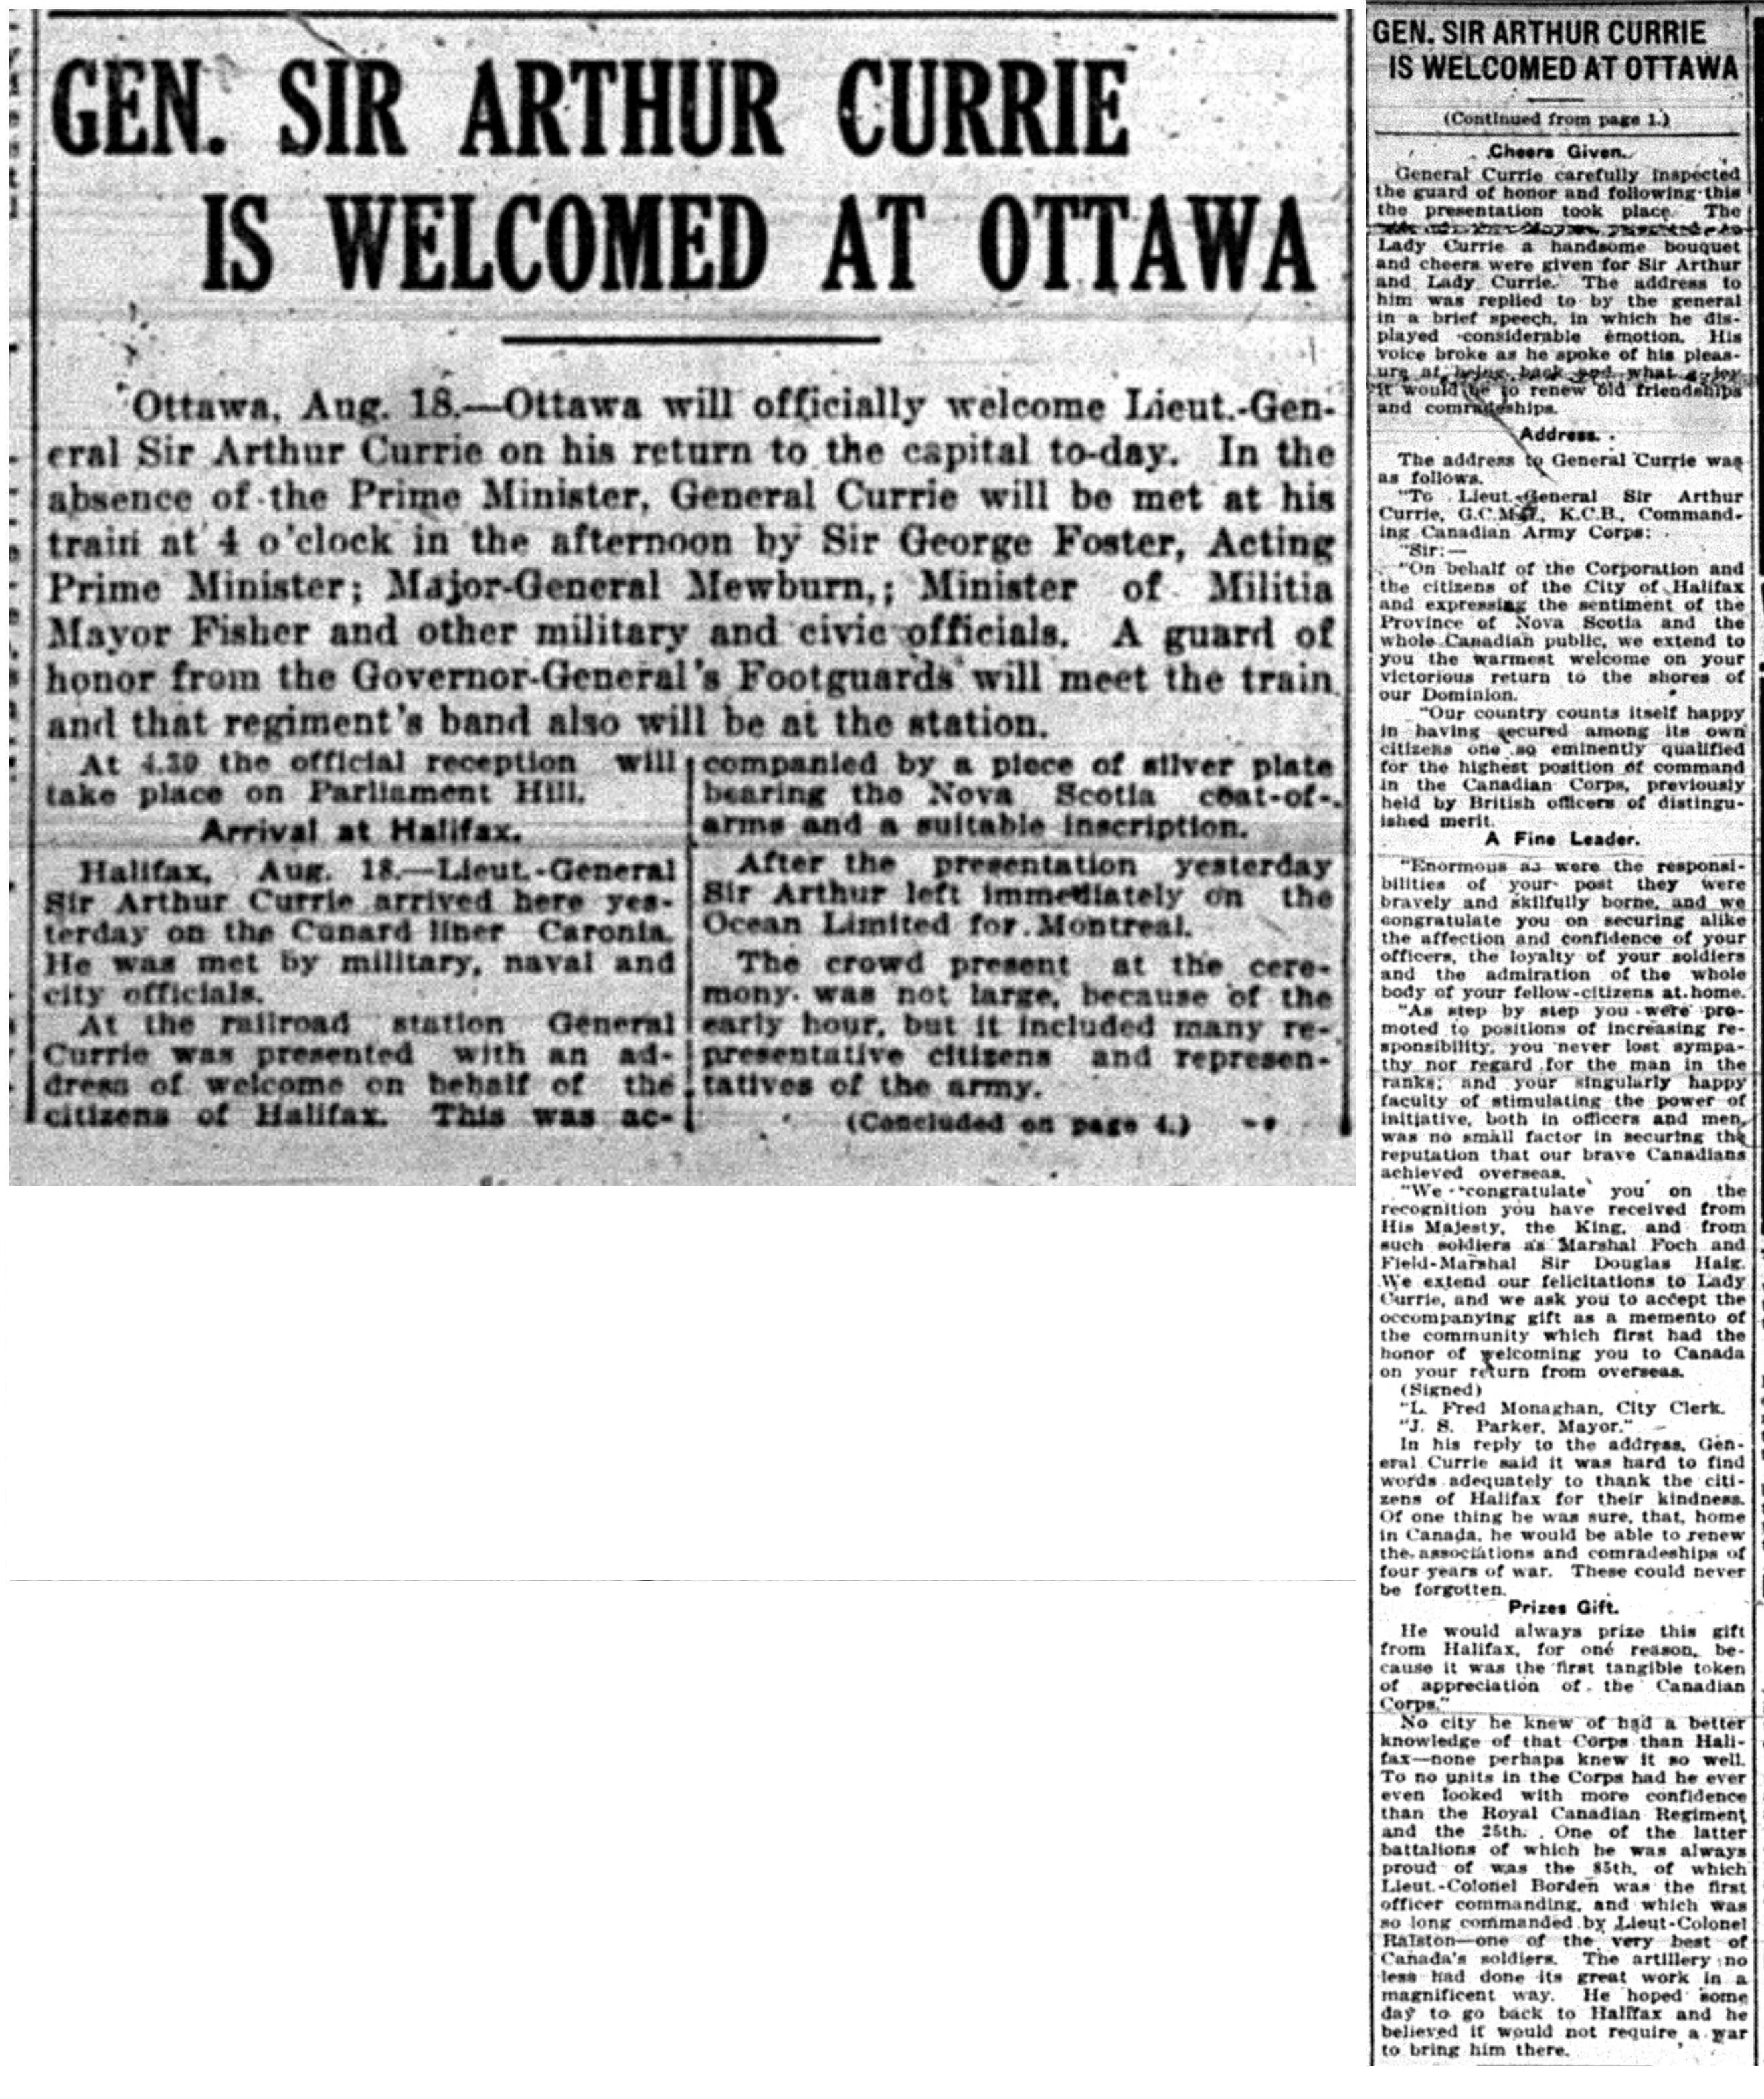 """Gen. Sir Arthur Currie Is Welcomed At Ottawa"""